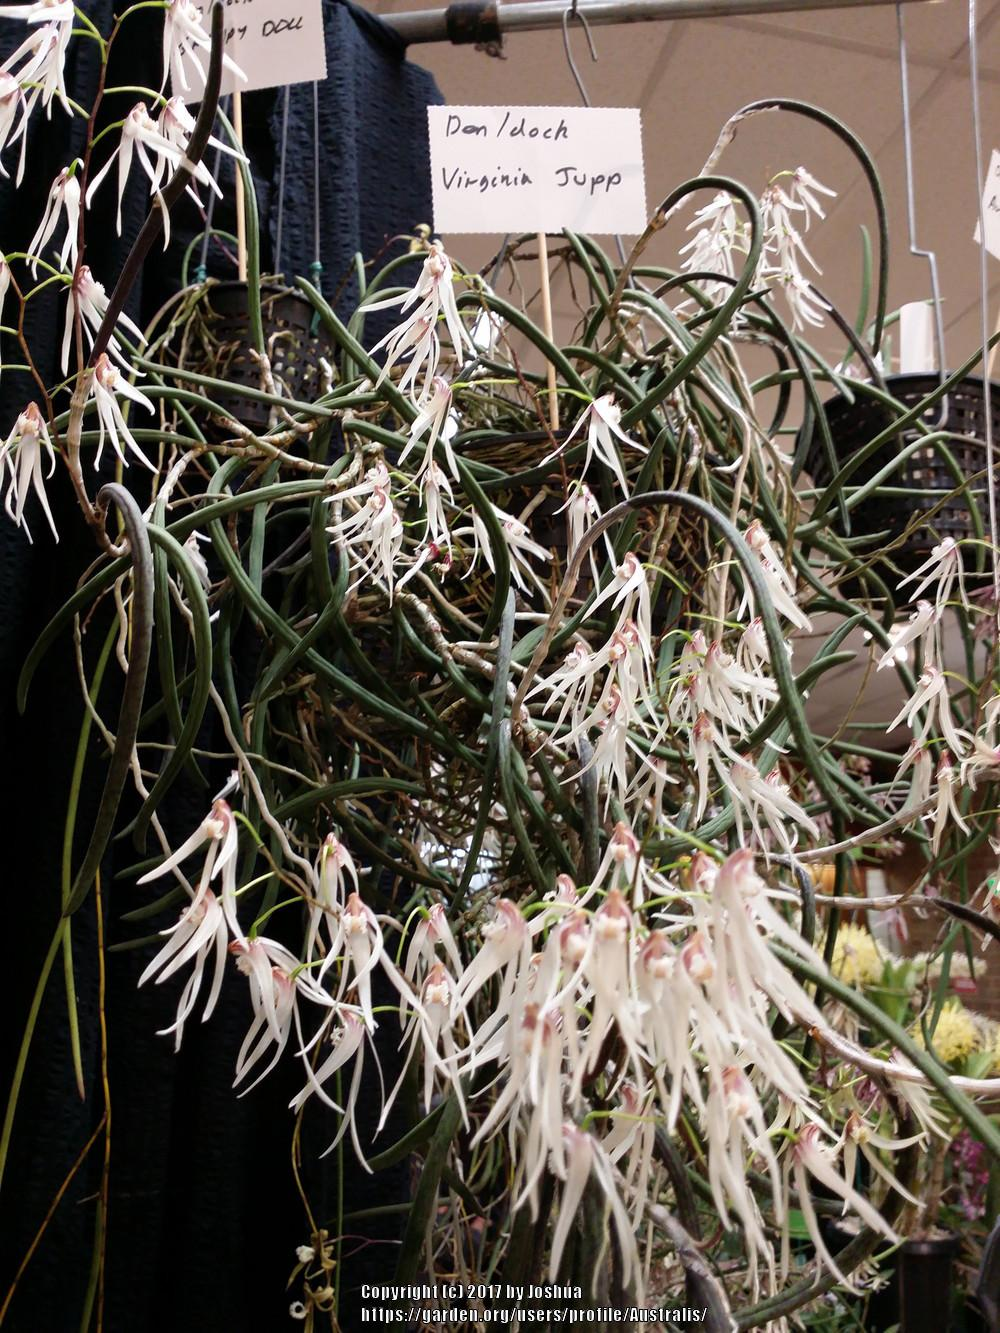 Photo of Orchid (Dendrobium Virginia Jupp) uploaded by Australis